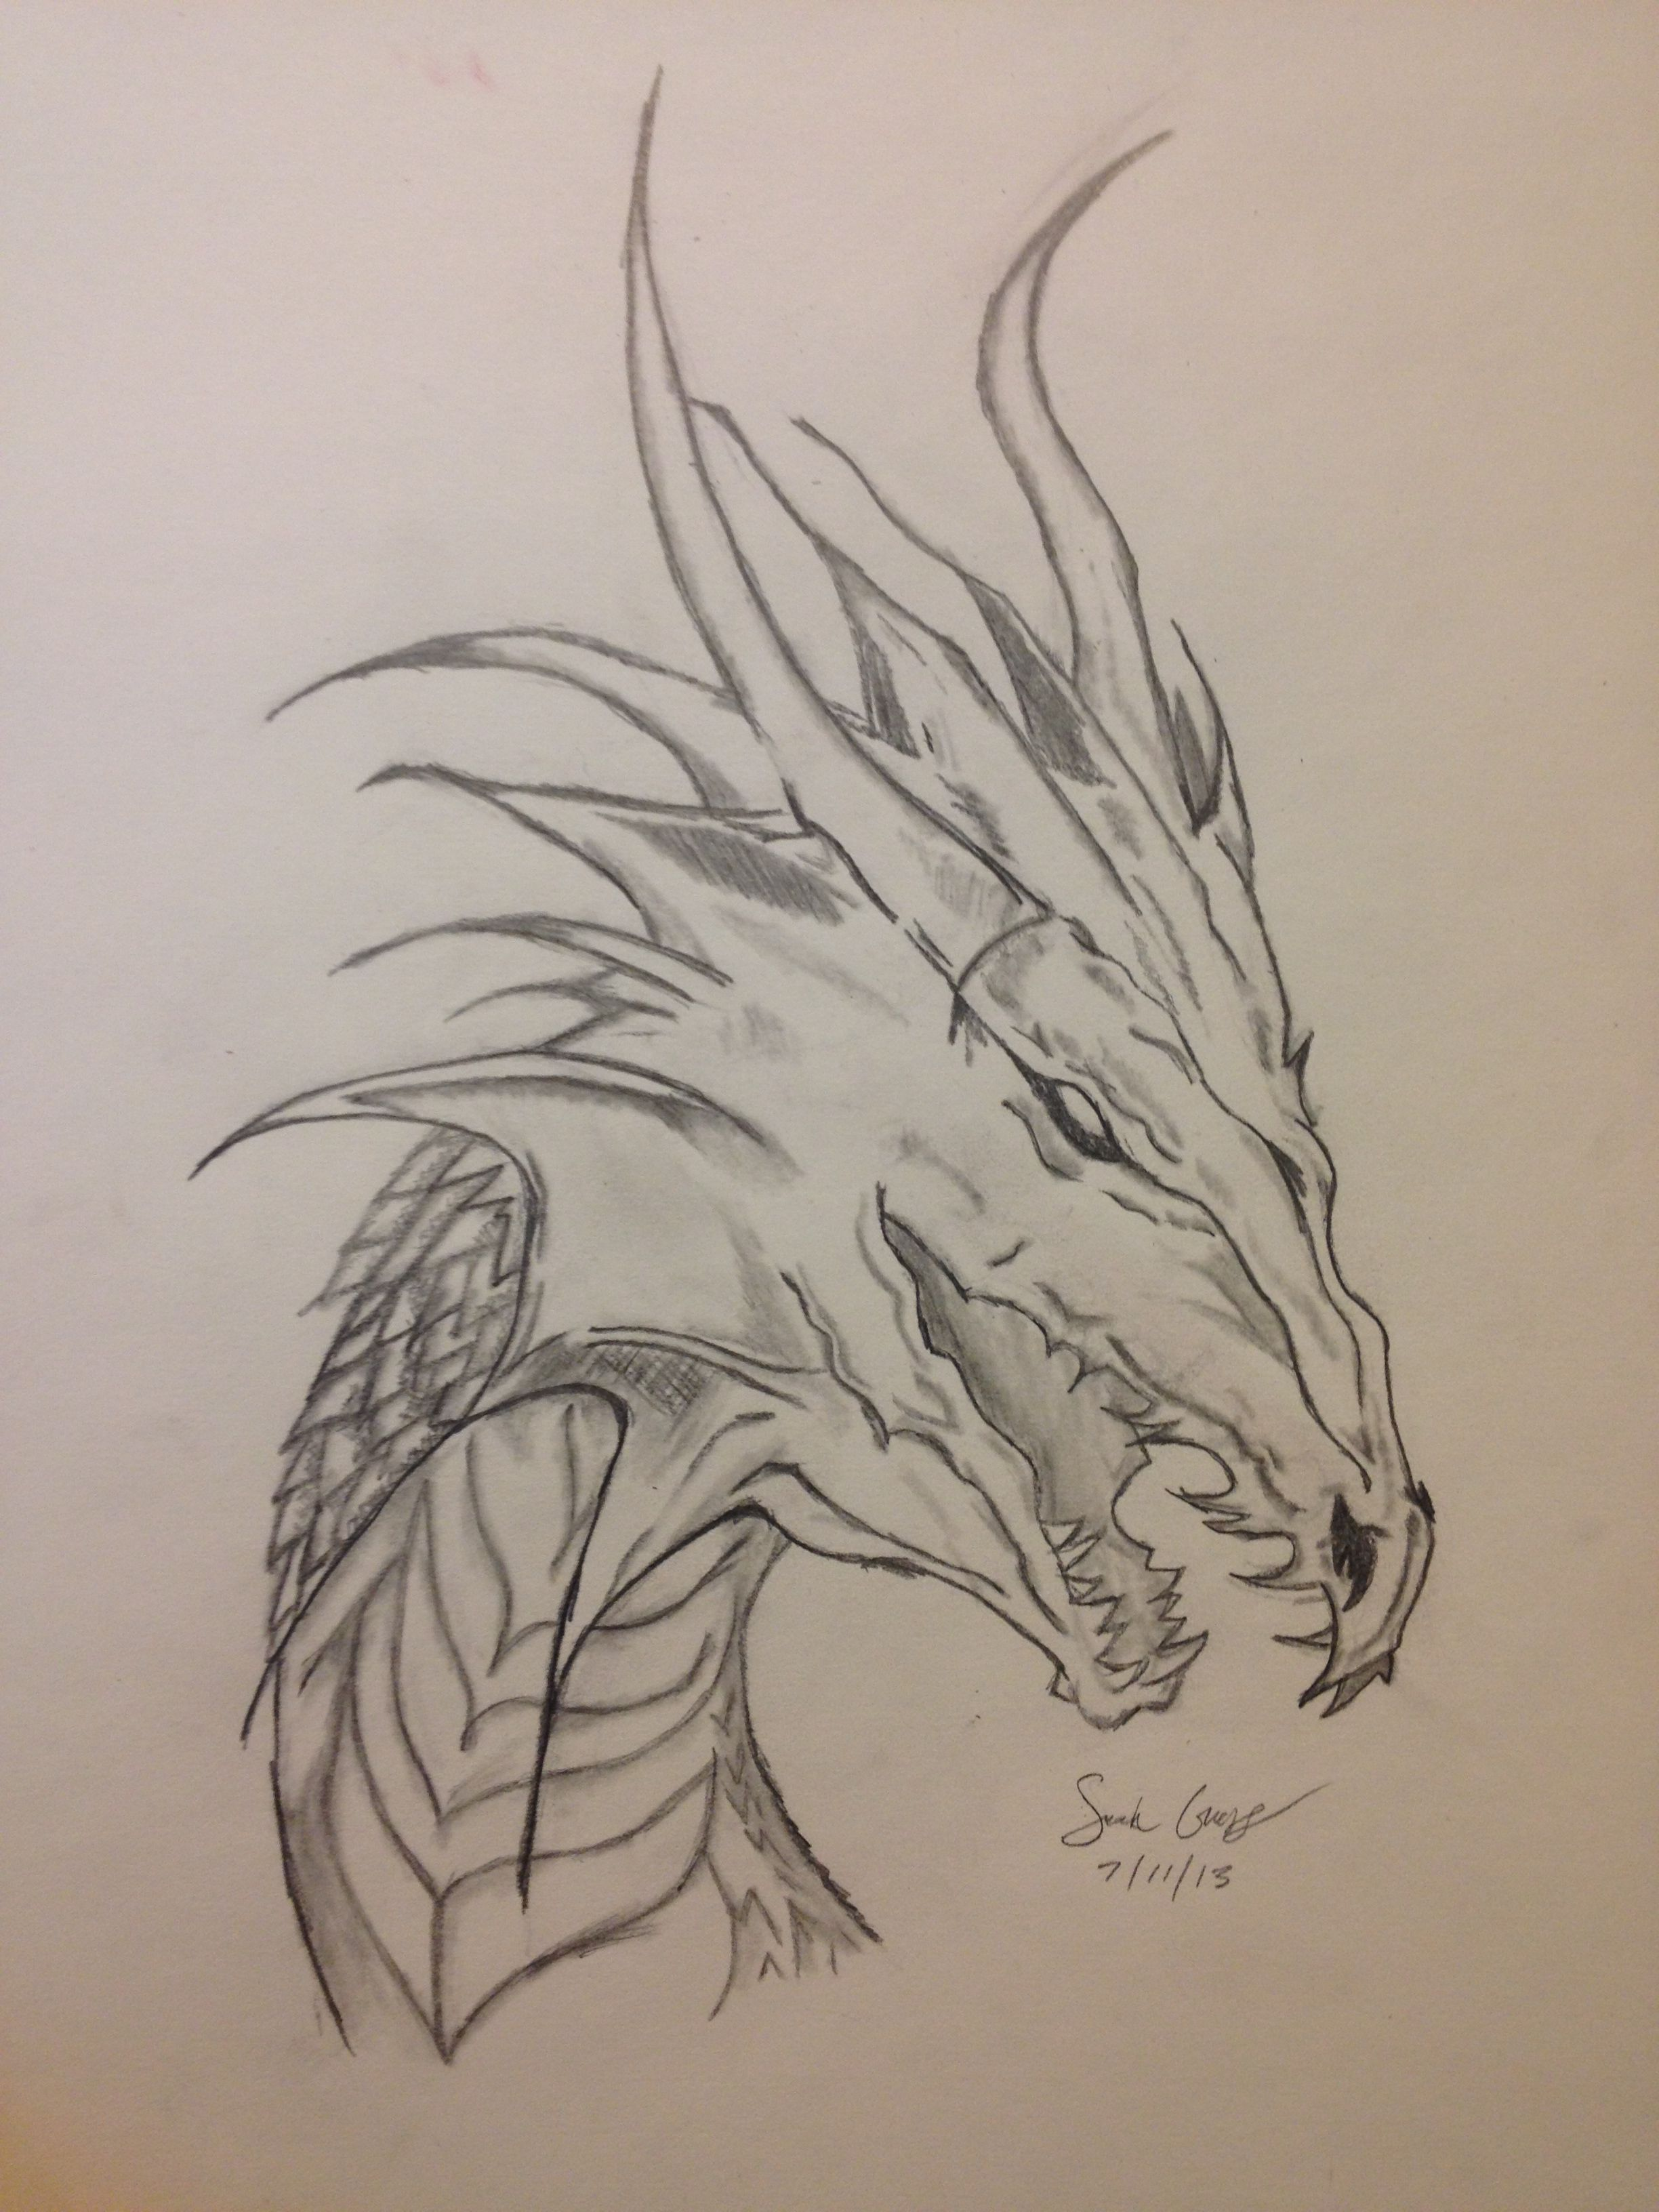 Dragons are the coolest things to draw